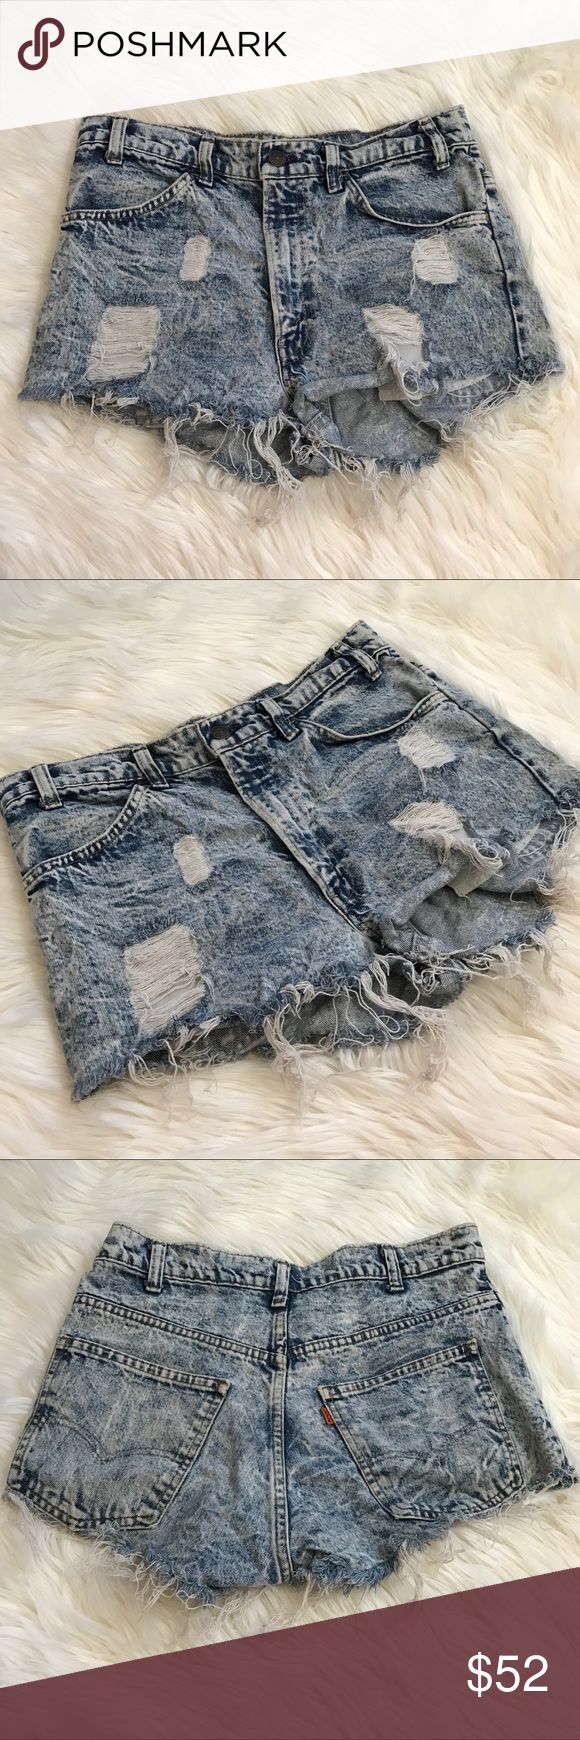 """Levi's Distressed Cutoff Jean Shorts Acid Wash Levi's pre distressed high rise/booty shorts cutoff jeans, Acid wash. There is no size tag present, but based off the measurements I believe these are a size 13/14. Measurements are approximately while lying flat: 16"""" waist & 32"""" in total around, 12"""" front length, 13"""" back length Please do not purchase these unless you know your measurements. All measurements are approximate. Selling as is. Marked at size 14 for exposure. Feel free to ask any…"""